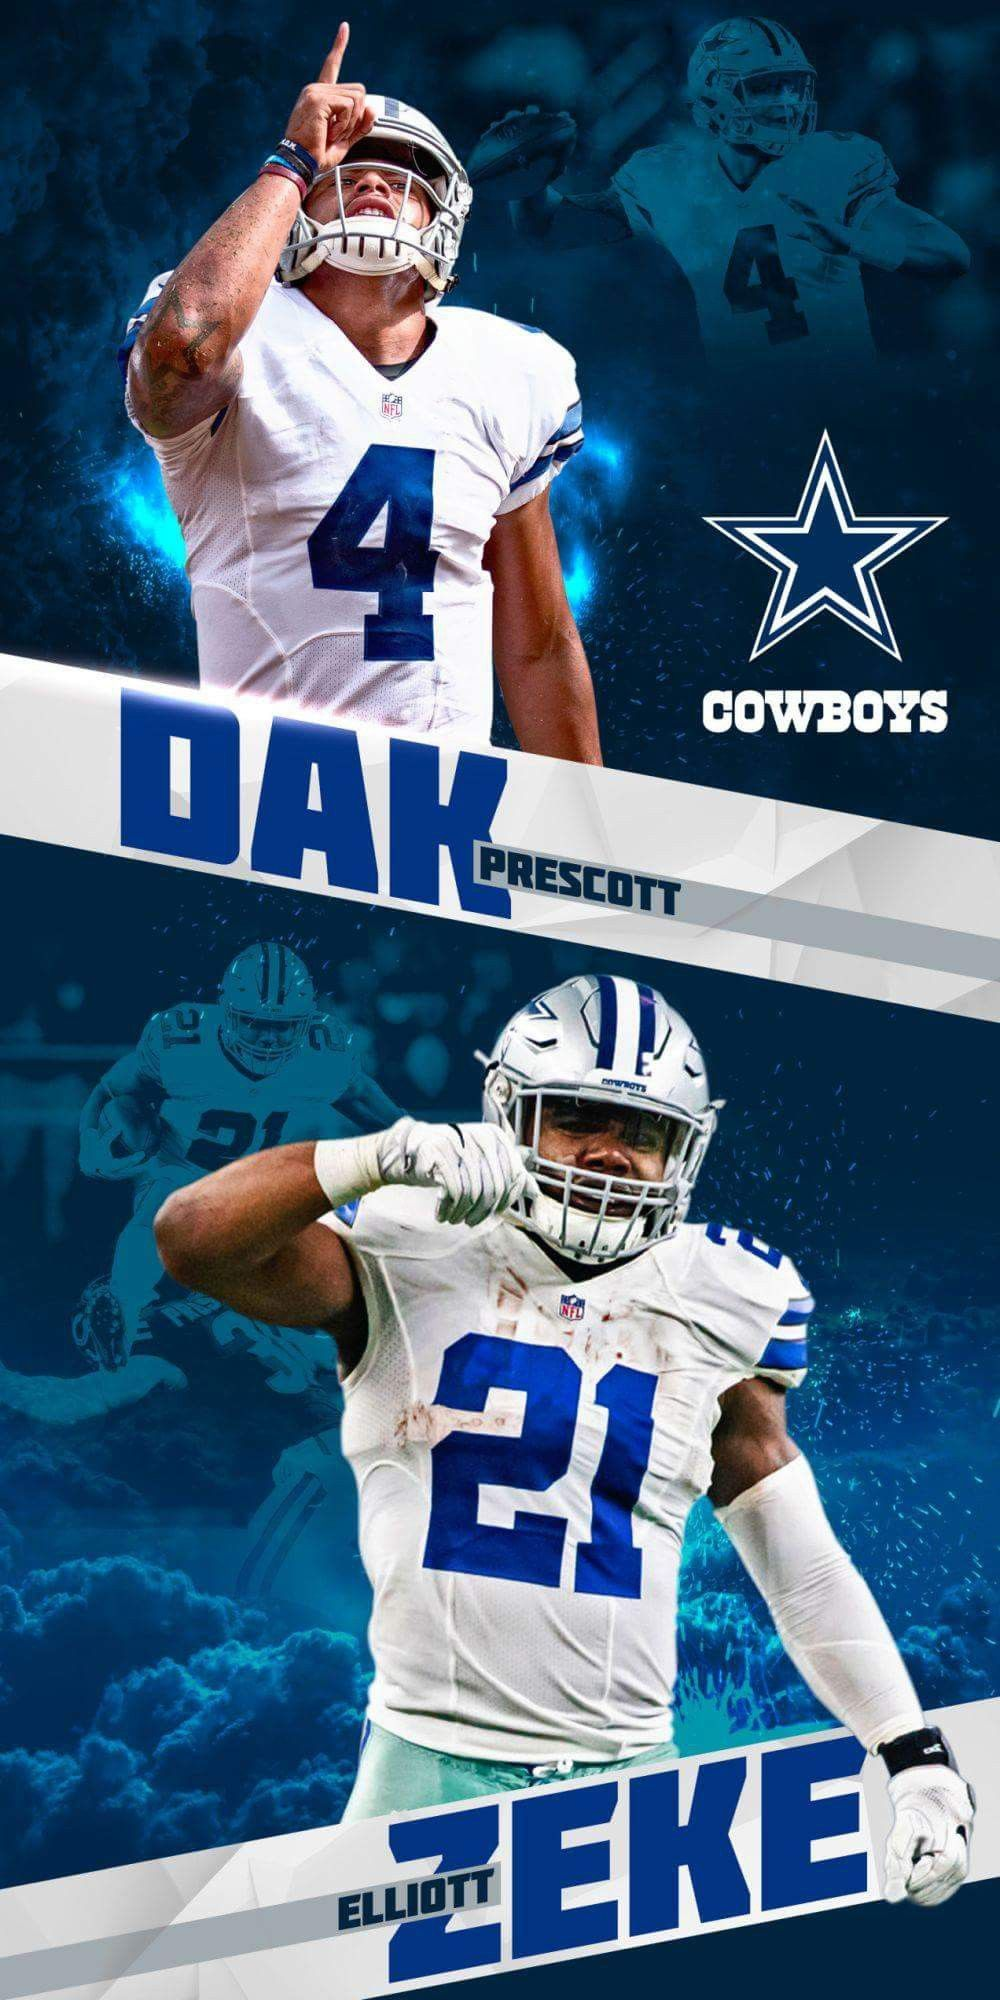 22e570e7a Go fans dallas Cowboys this Sunday football game tonight I don t know win  are lose